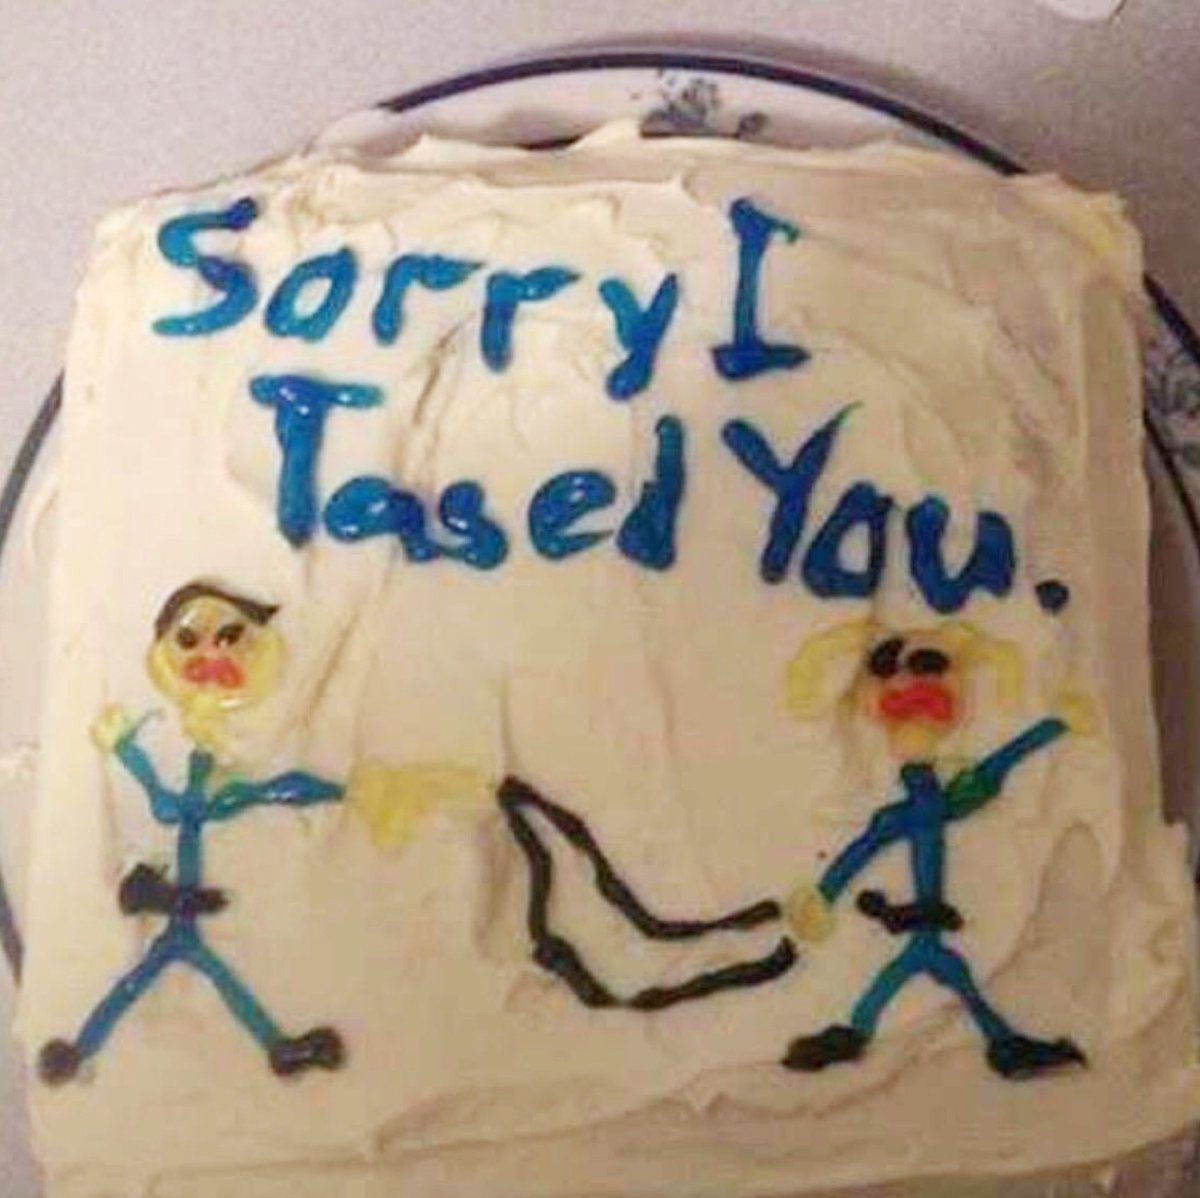 This photo released by Alistair McKenzie shows a photo of a cake received by his client Stephanie Byron via text message.